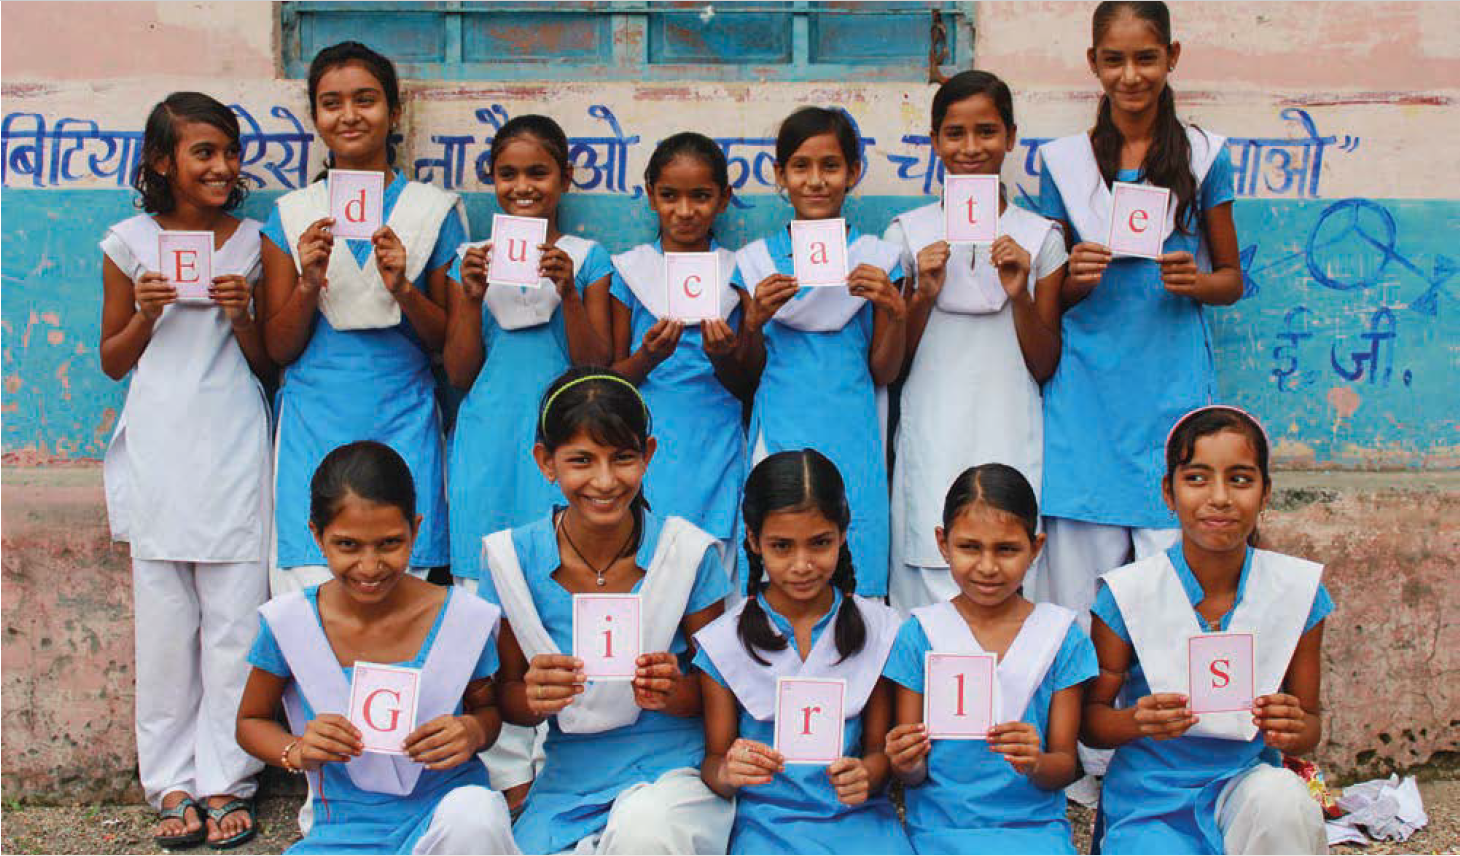 Educate Girls India